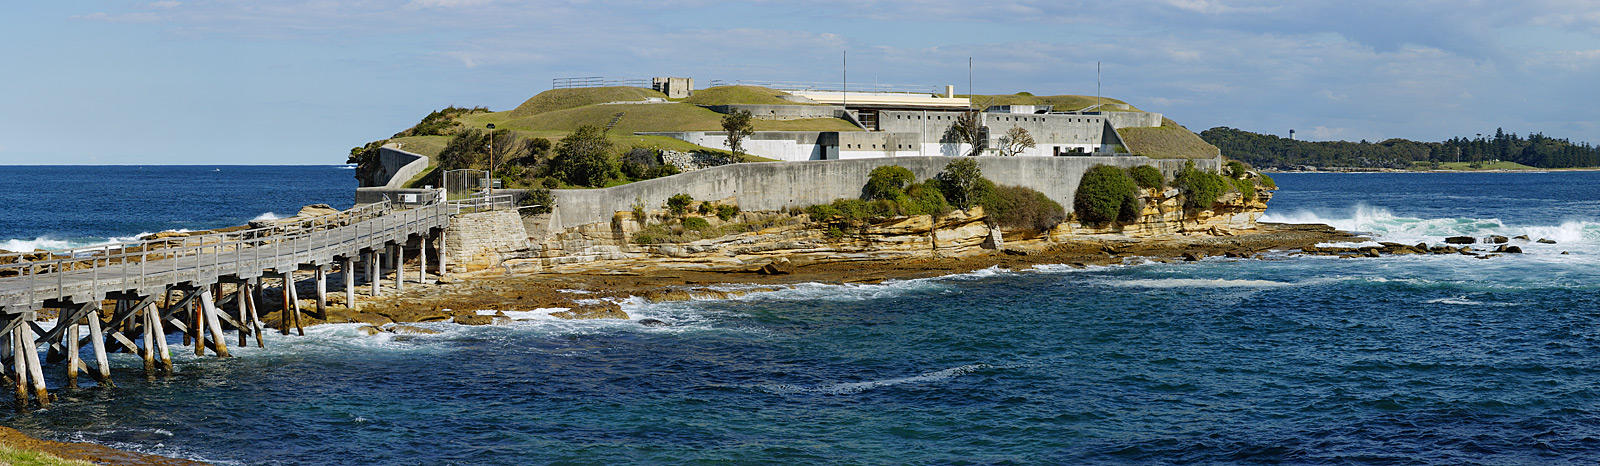 Bare Island Fortification Crop